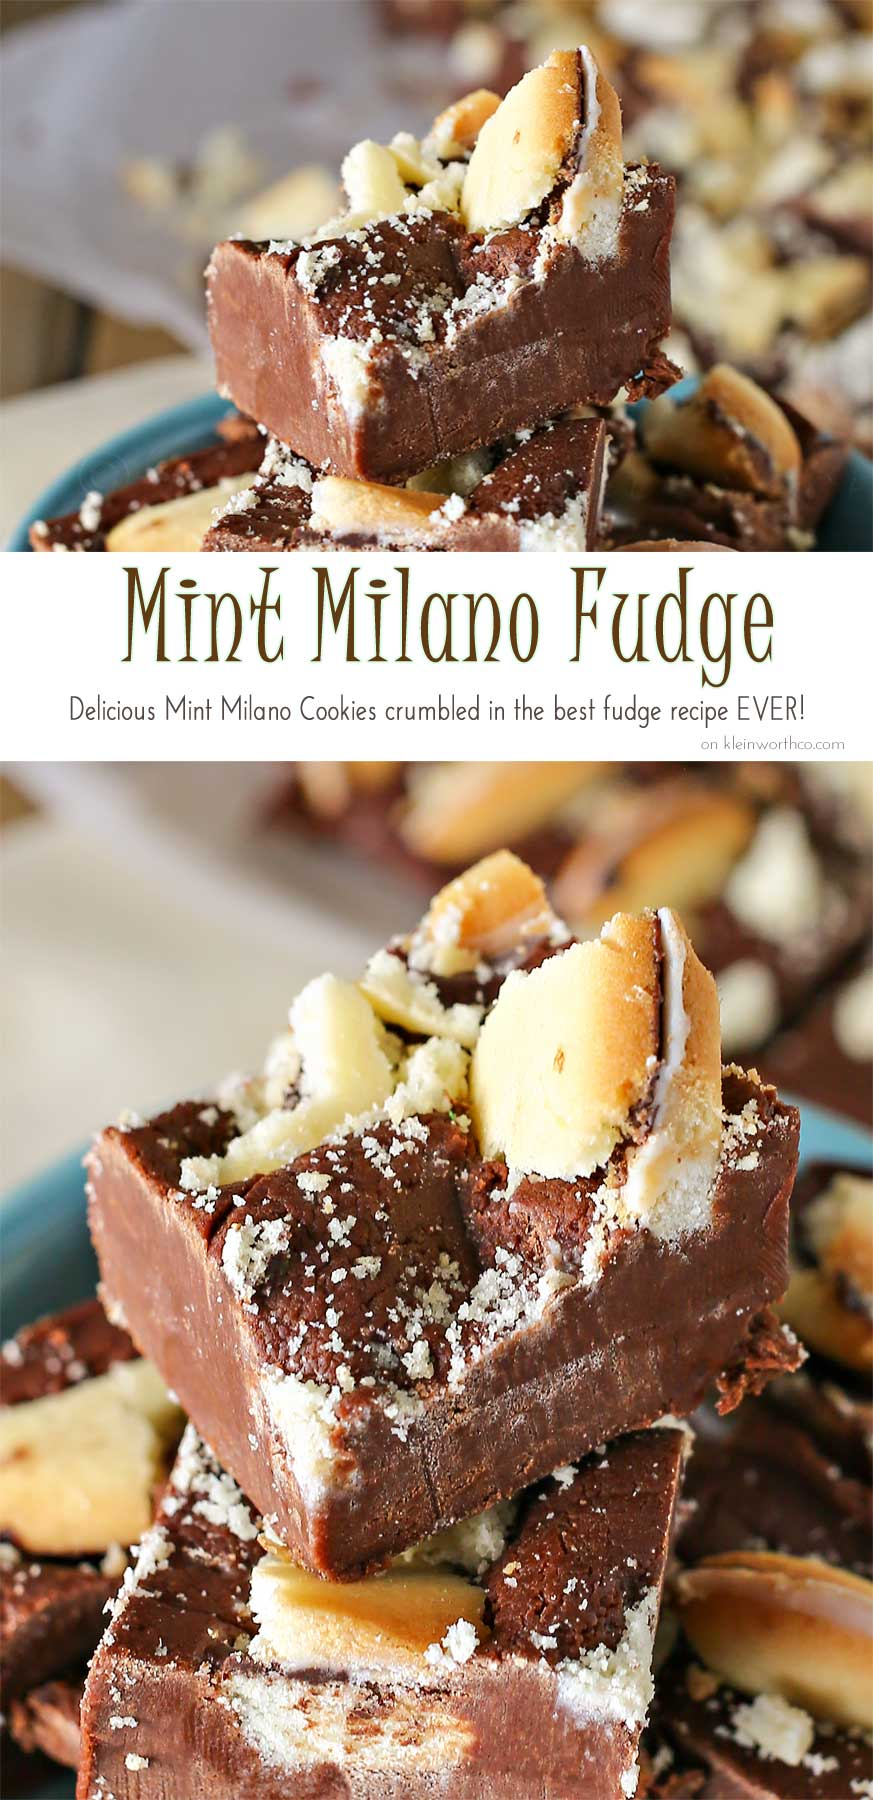 Mint Milano Fudge